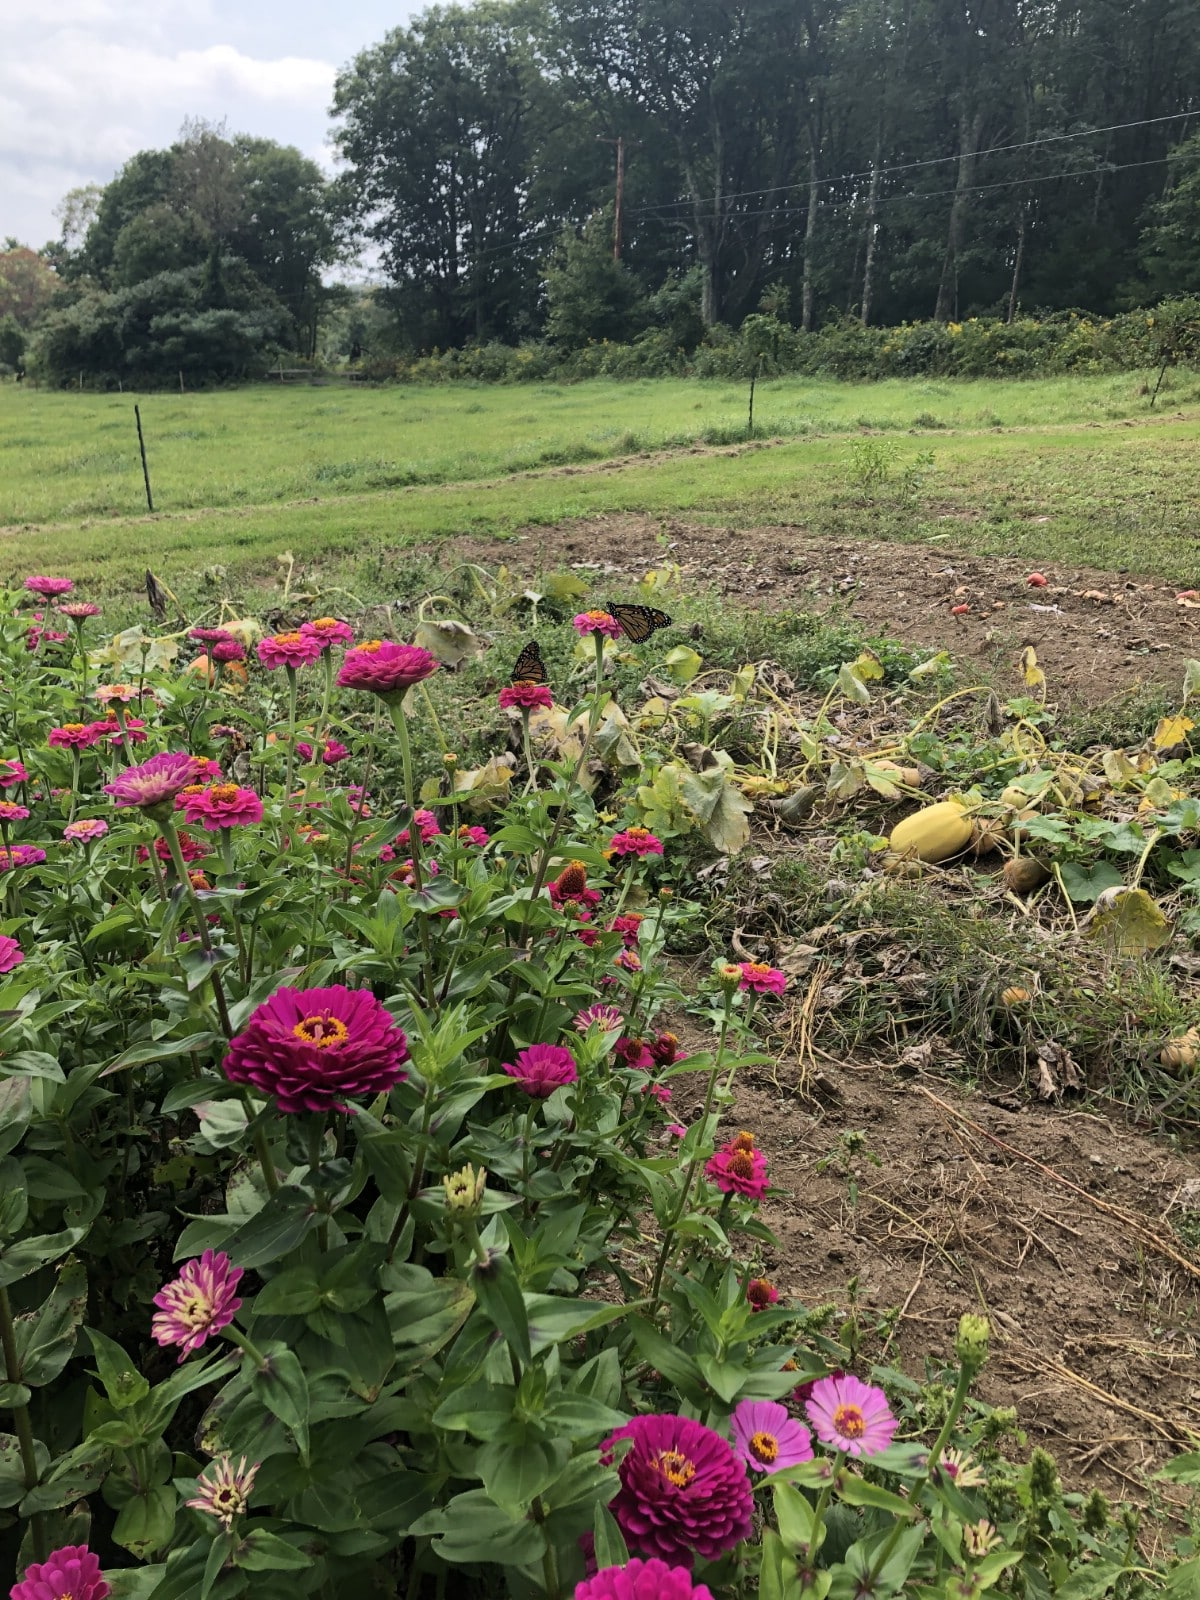 row of cut flowers next to squash